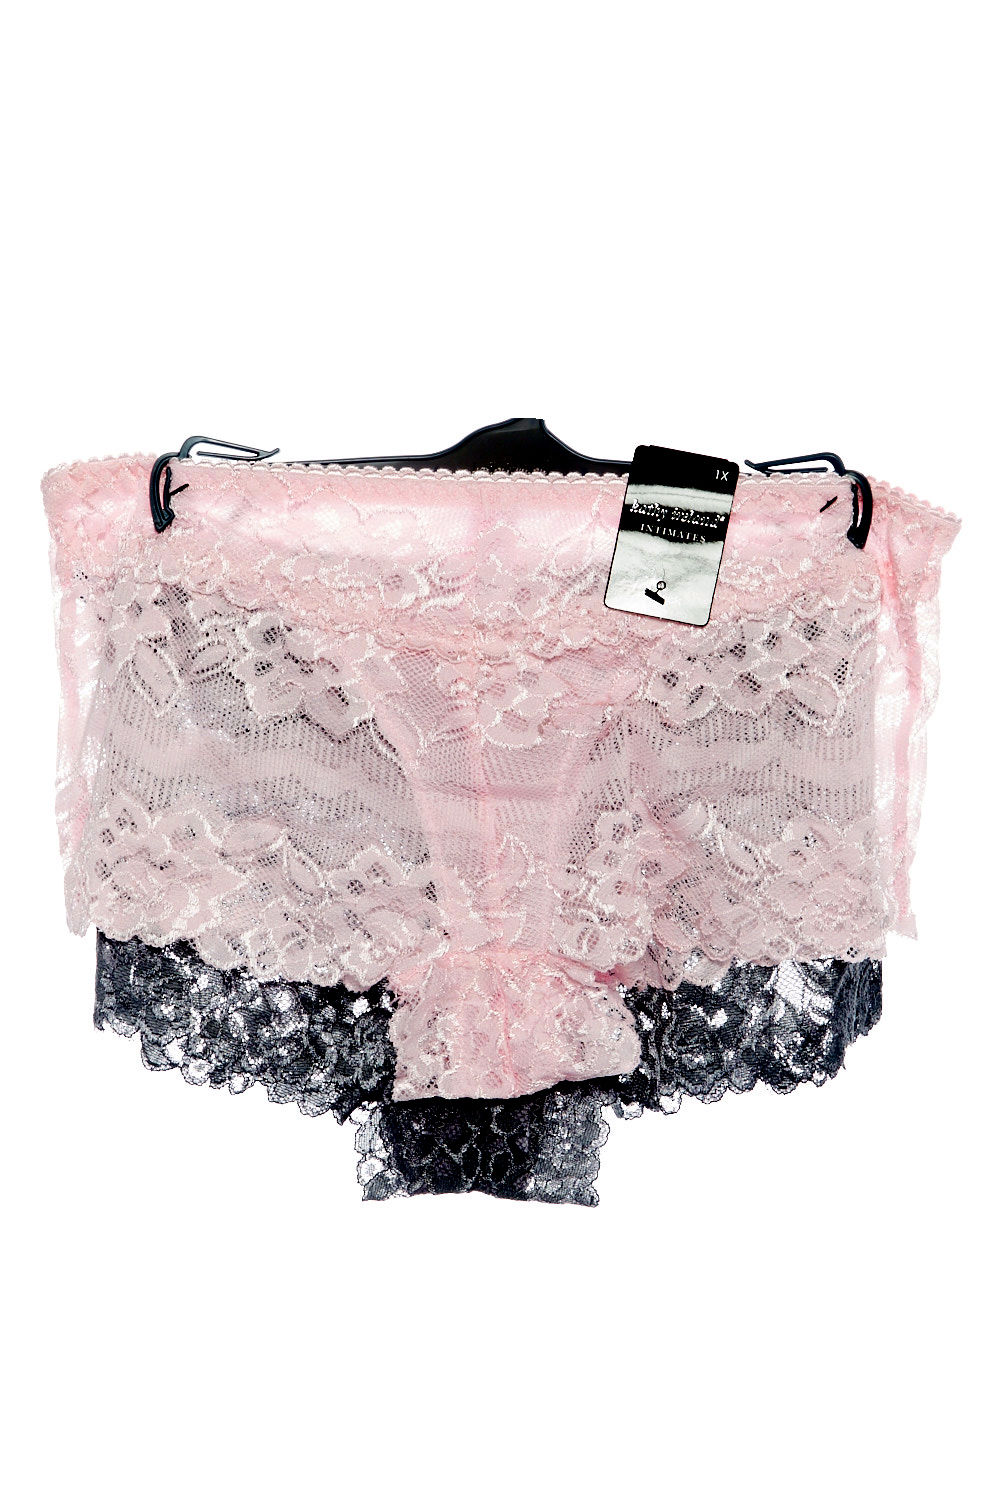 2e6afe7b591c Womens Plus Size 2 Pcs Full Floral Lace Boyshort Panties Set Pink/grey XL.  About this product. Picture 1 of 3; Picture 2 of 3 ...